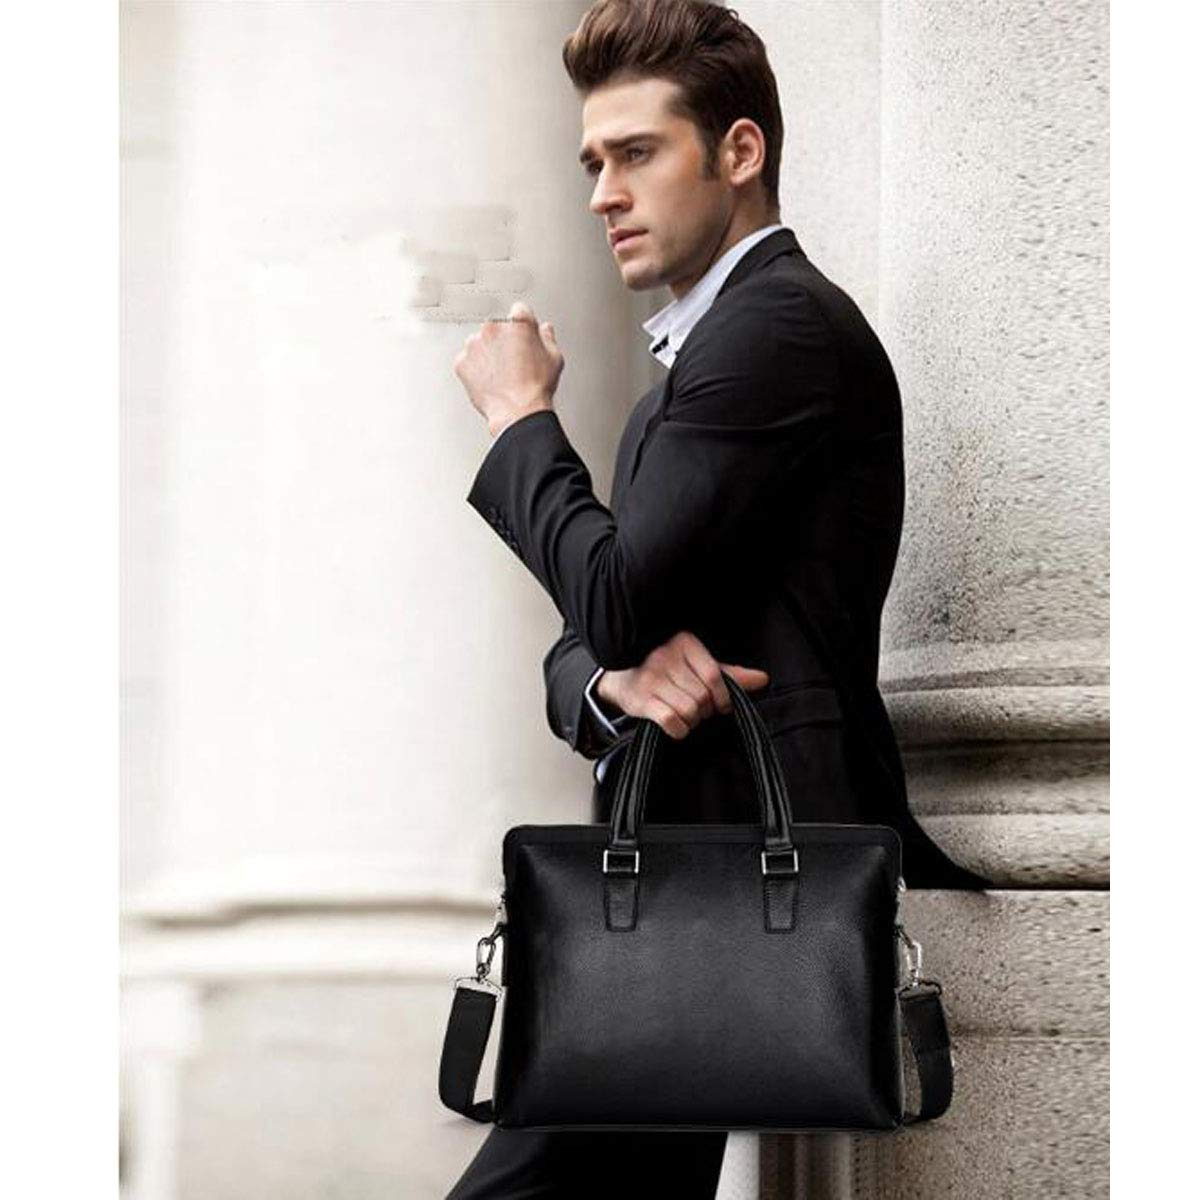 Color : Black Chenjinxiang Briefcase Best Selling Leather Mens Shoulder Diagonal Bag Size: 38630cm Concise Large Capacity Computer Bag Black Multi-Function Travel Bag